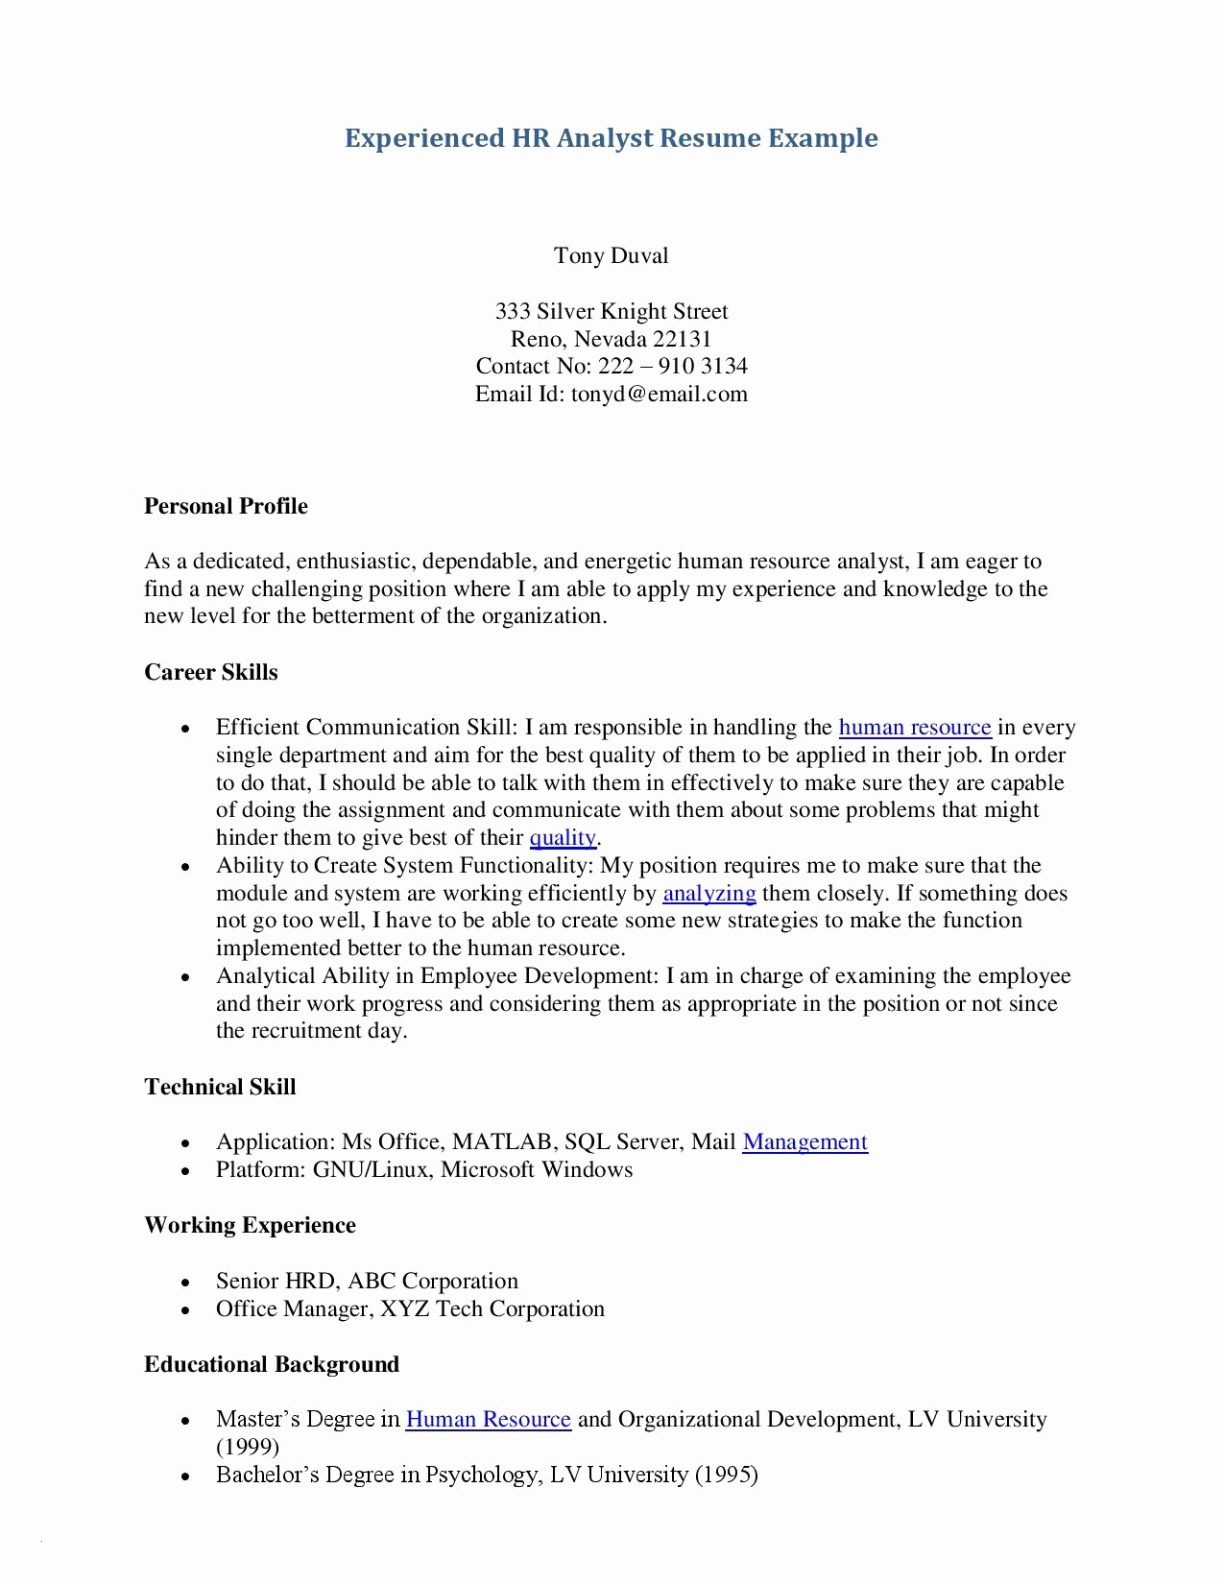 Letter Of Counseling Template - Resume Internship Template Sfonthebridge Sfonthebridge